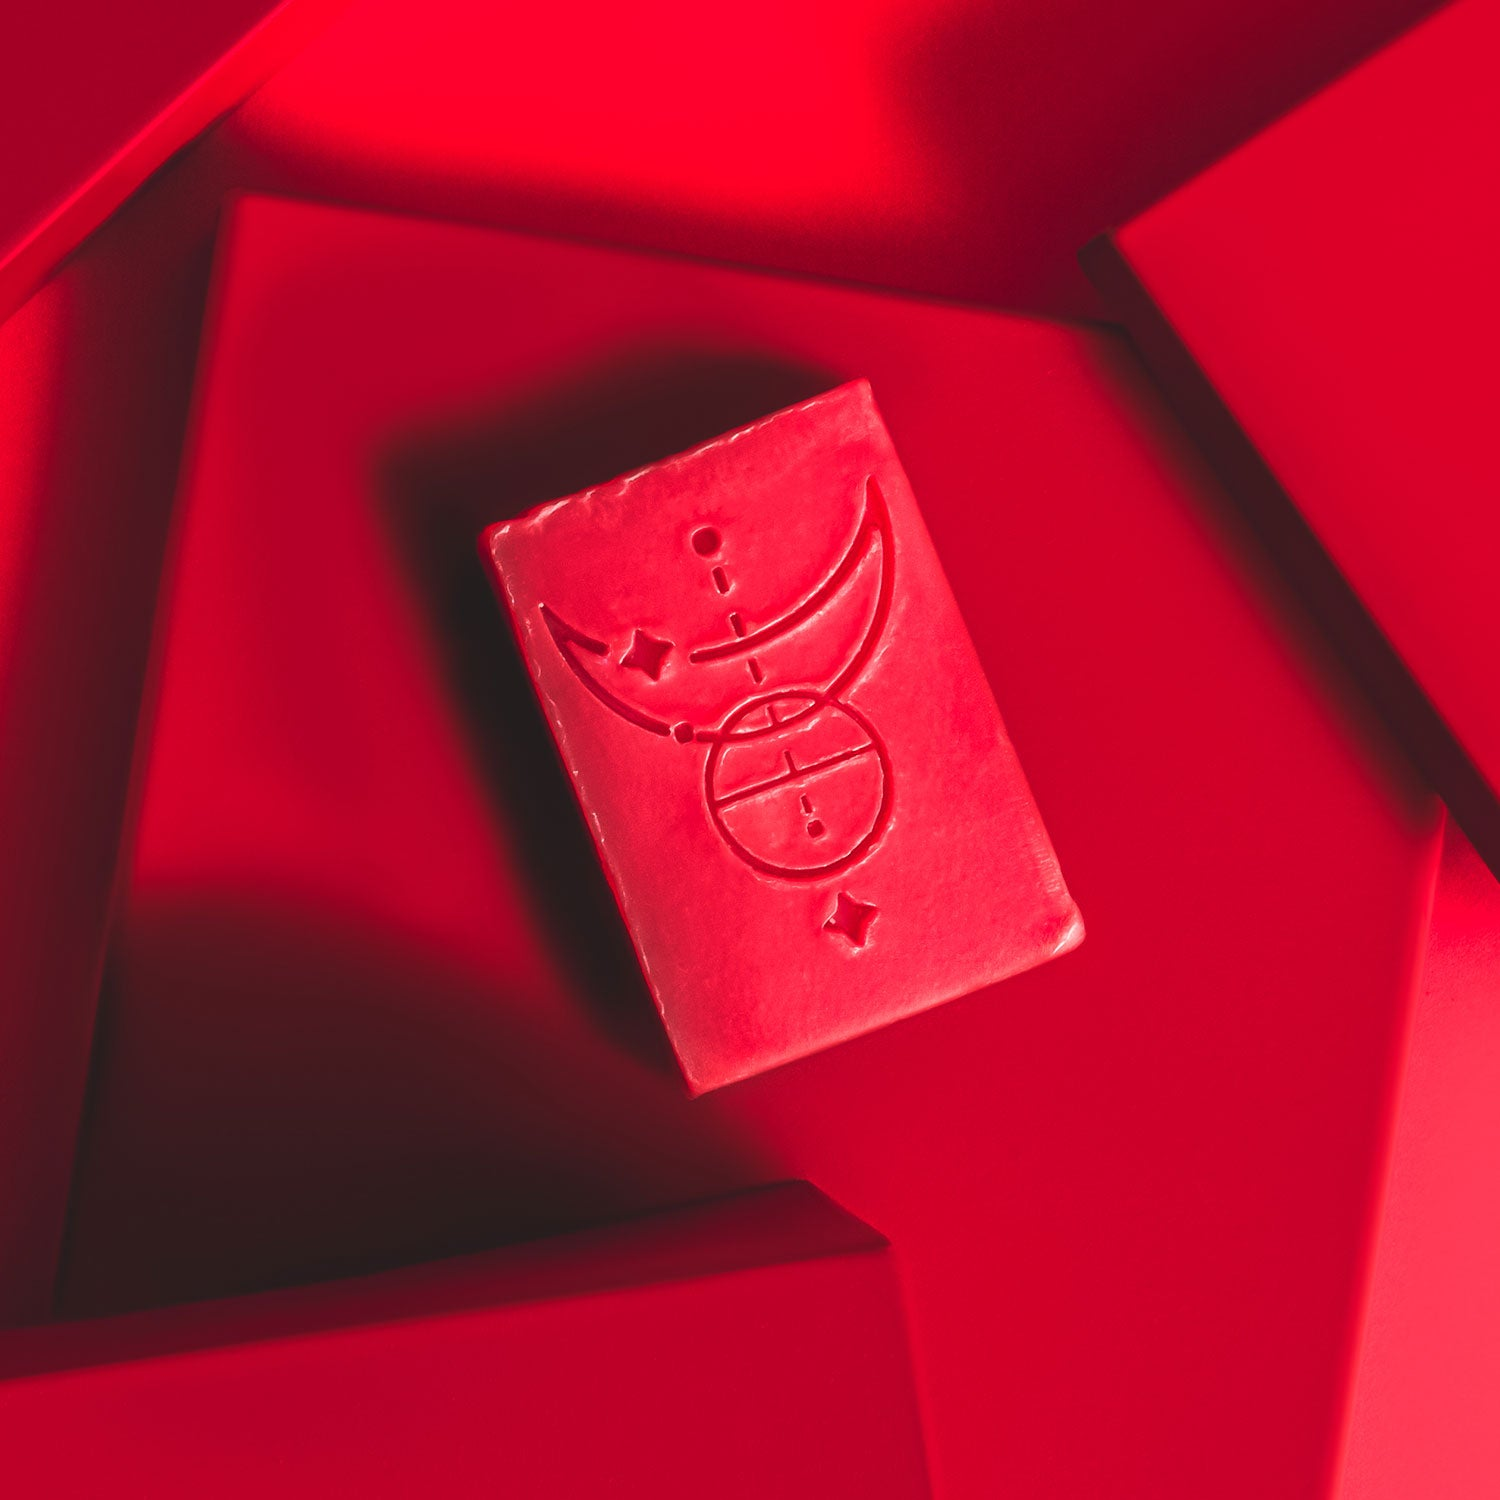 a bar of compassion soap on a red background